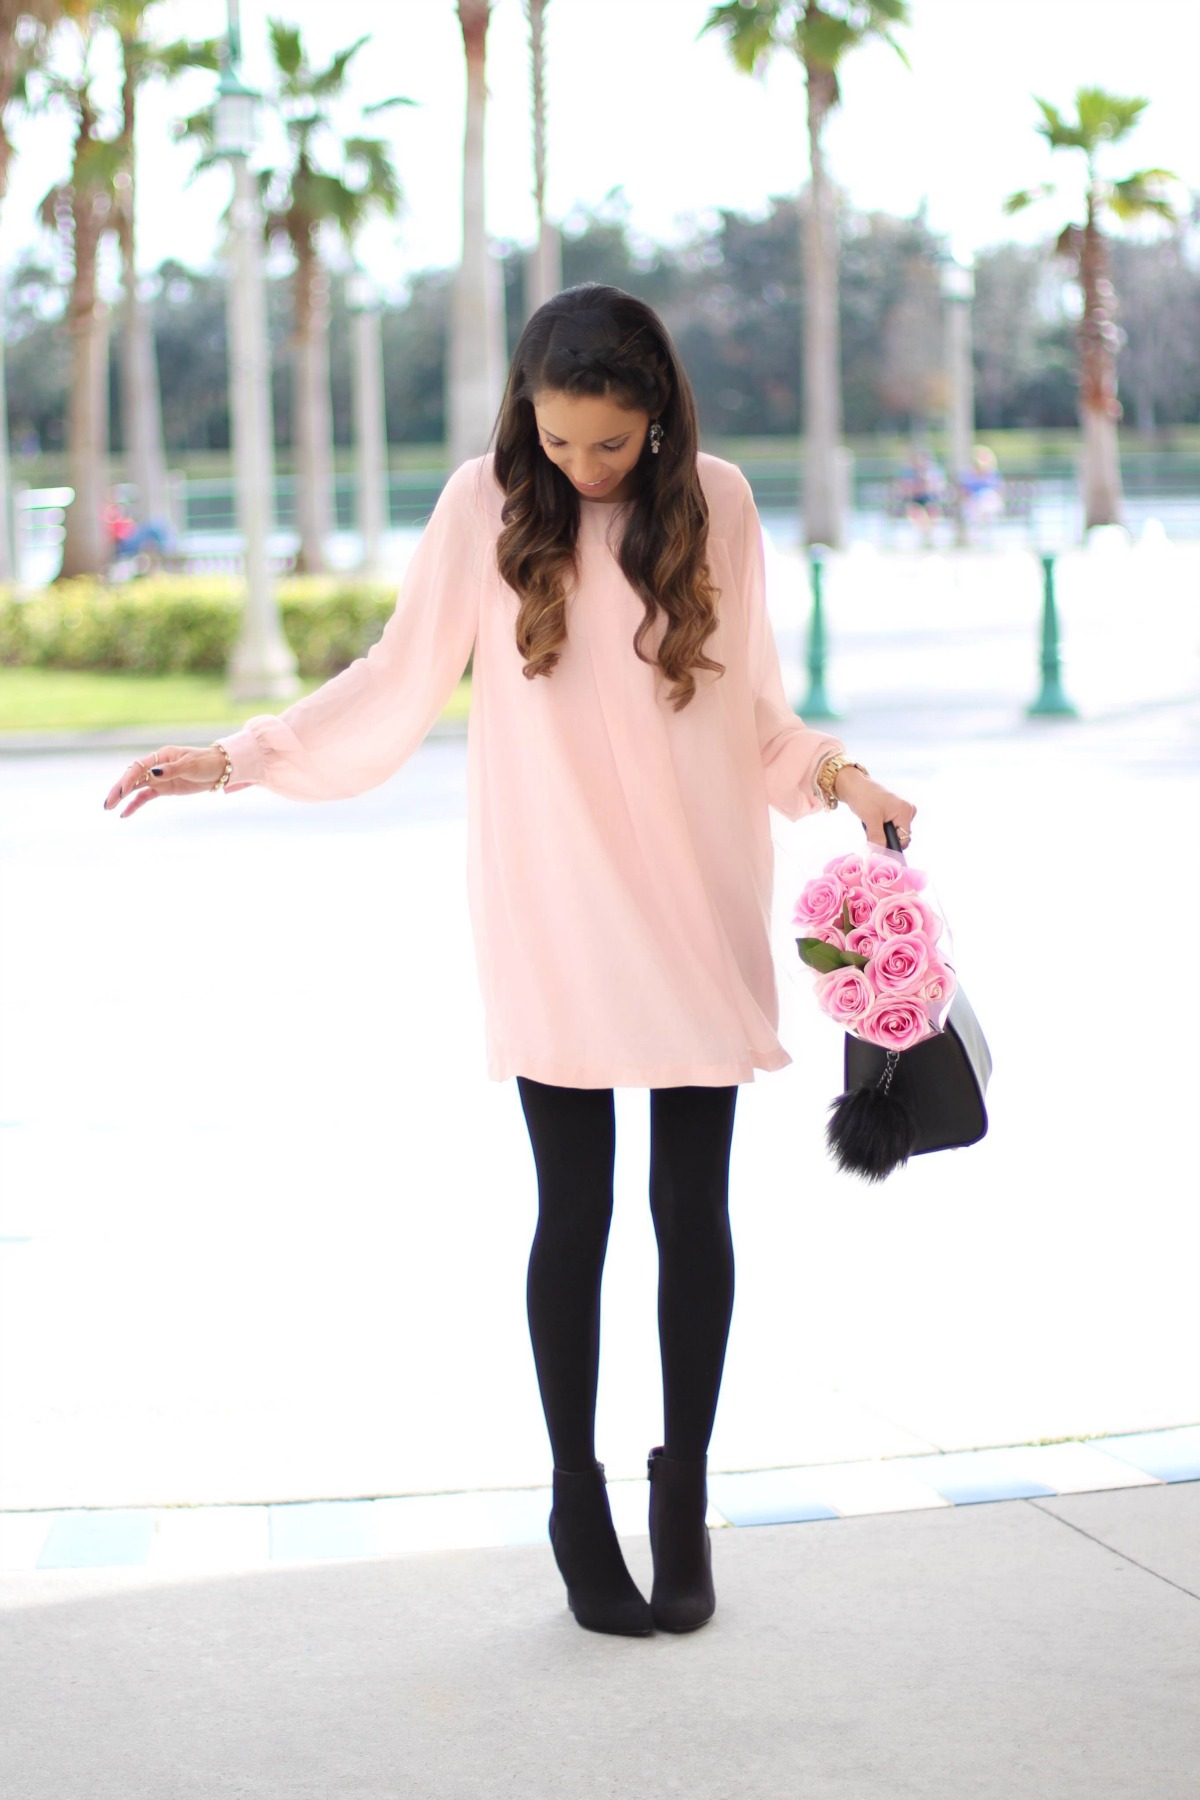 Blush tunic, black tights and booties